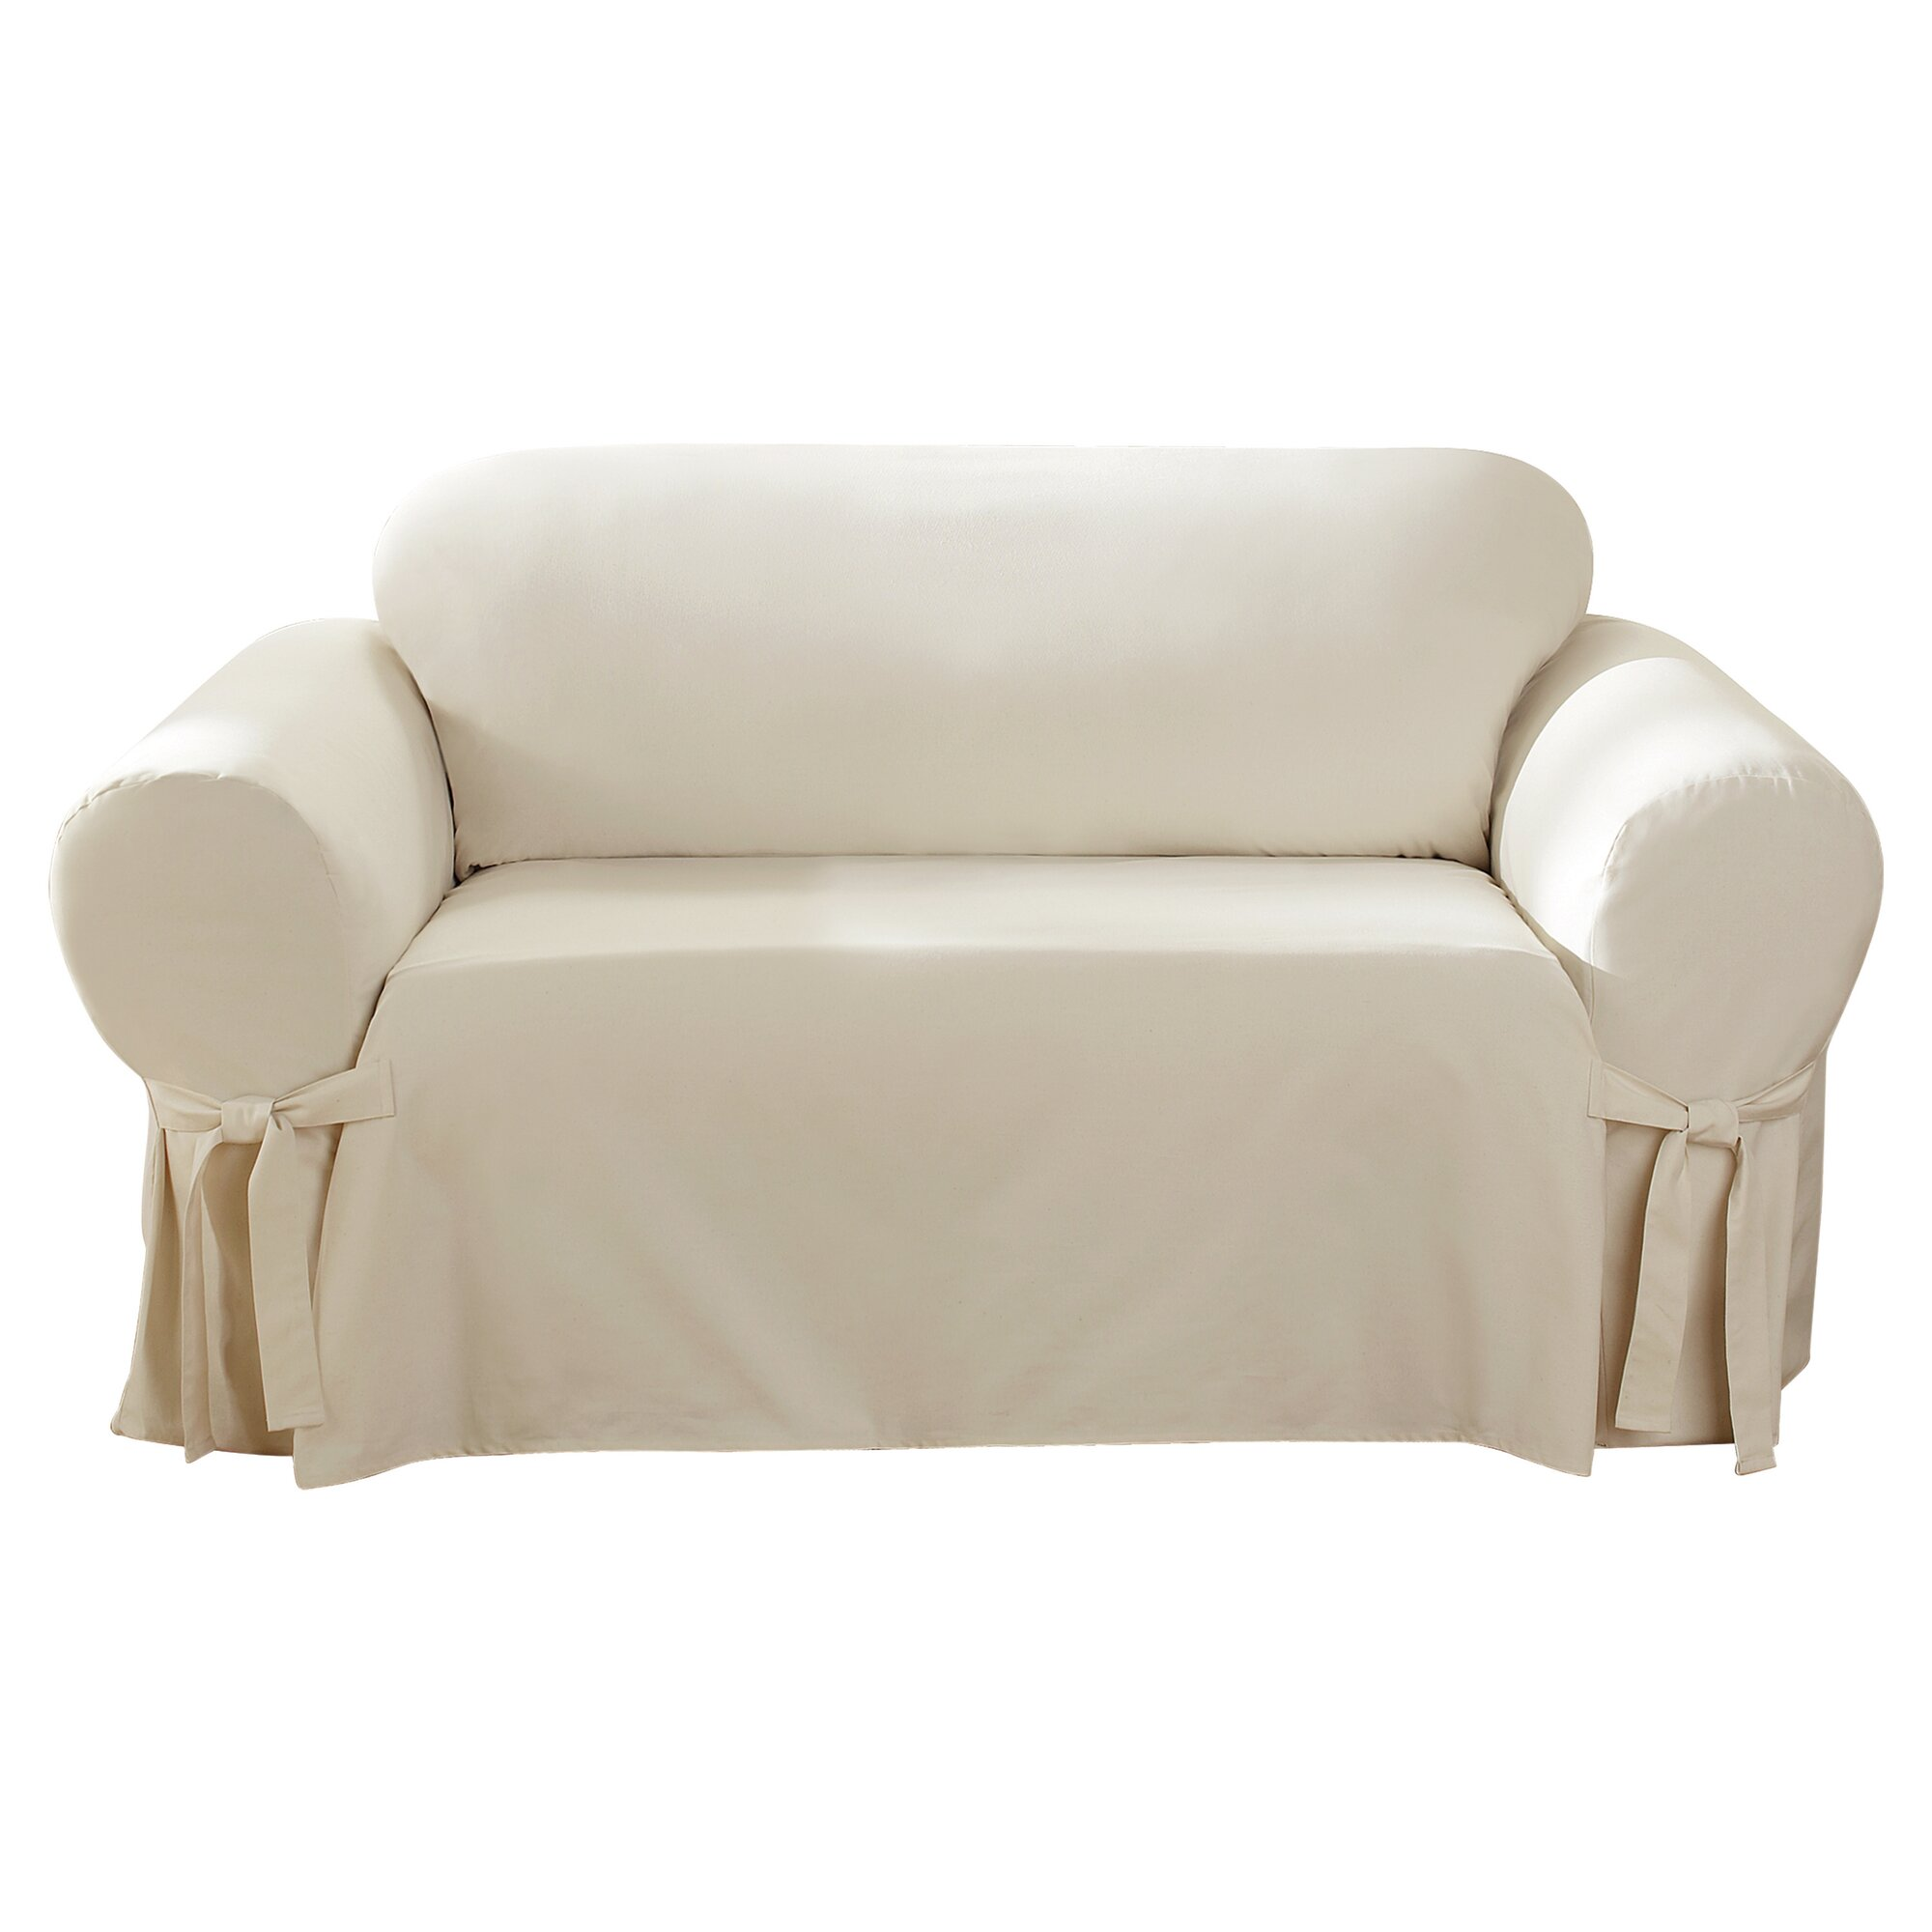 Duck Sofa Sure Fit Heavyweight Cotton Duck One Piece